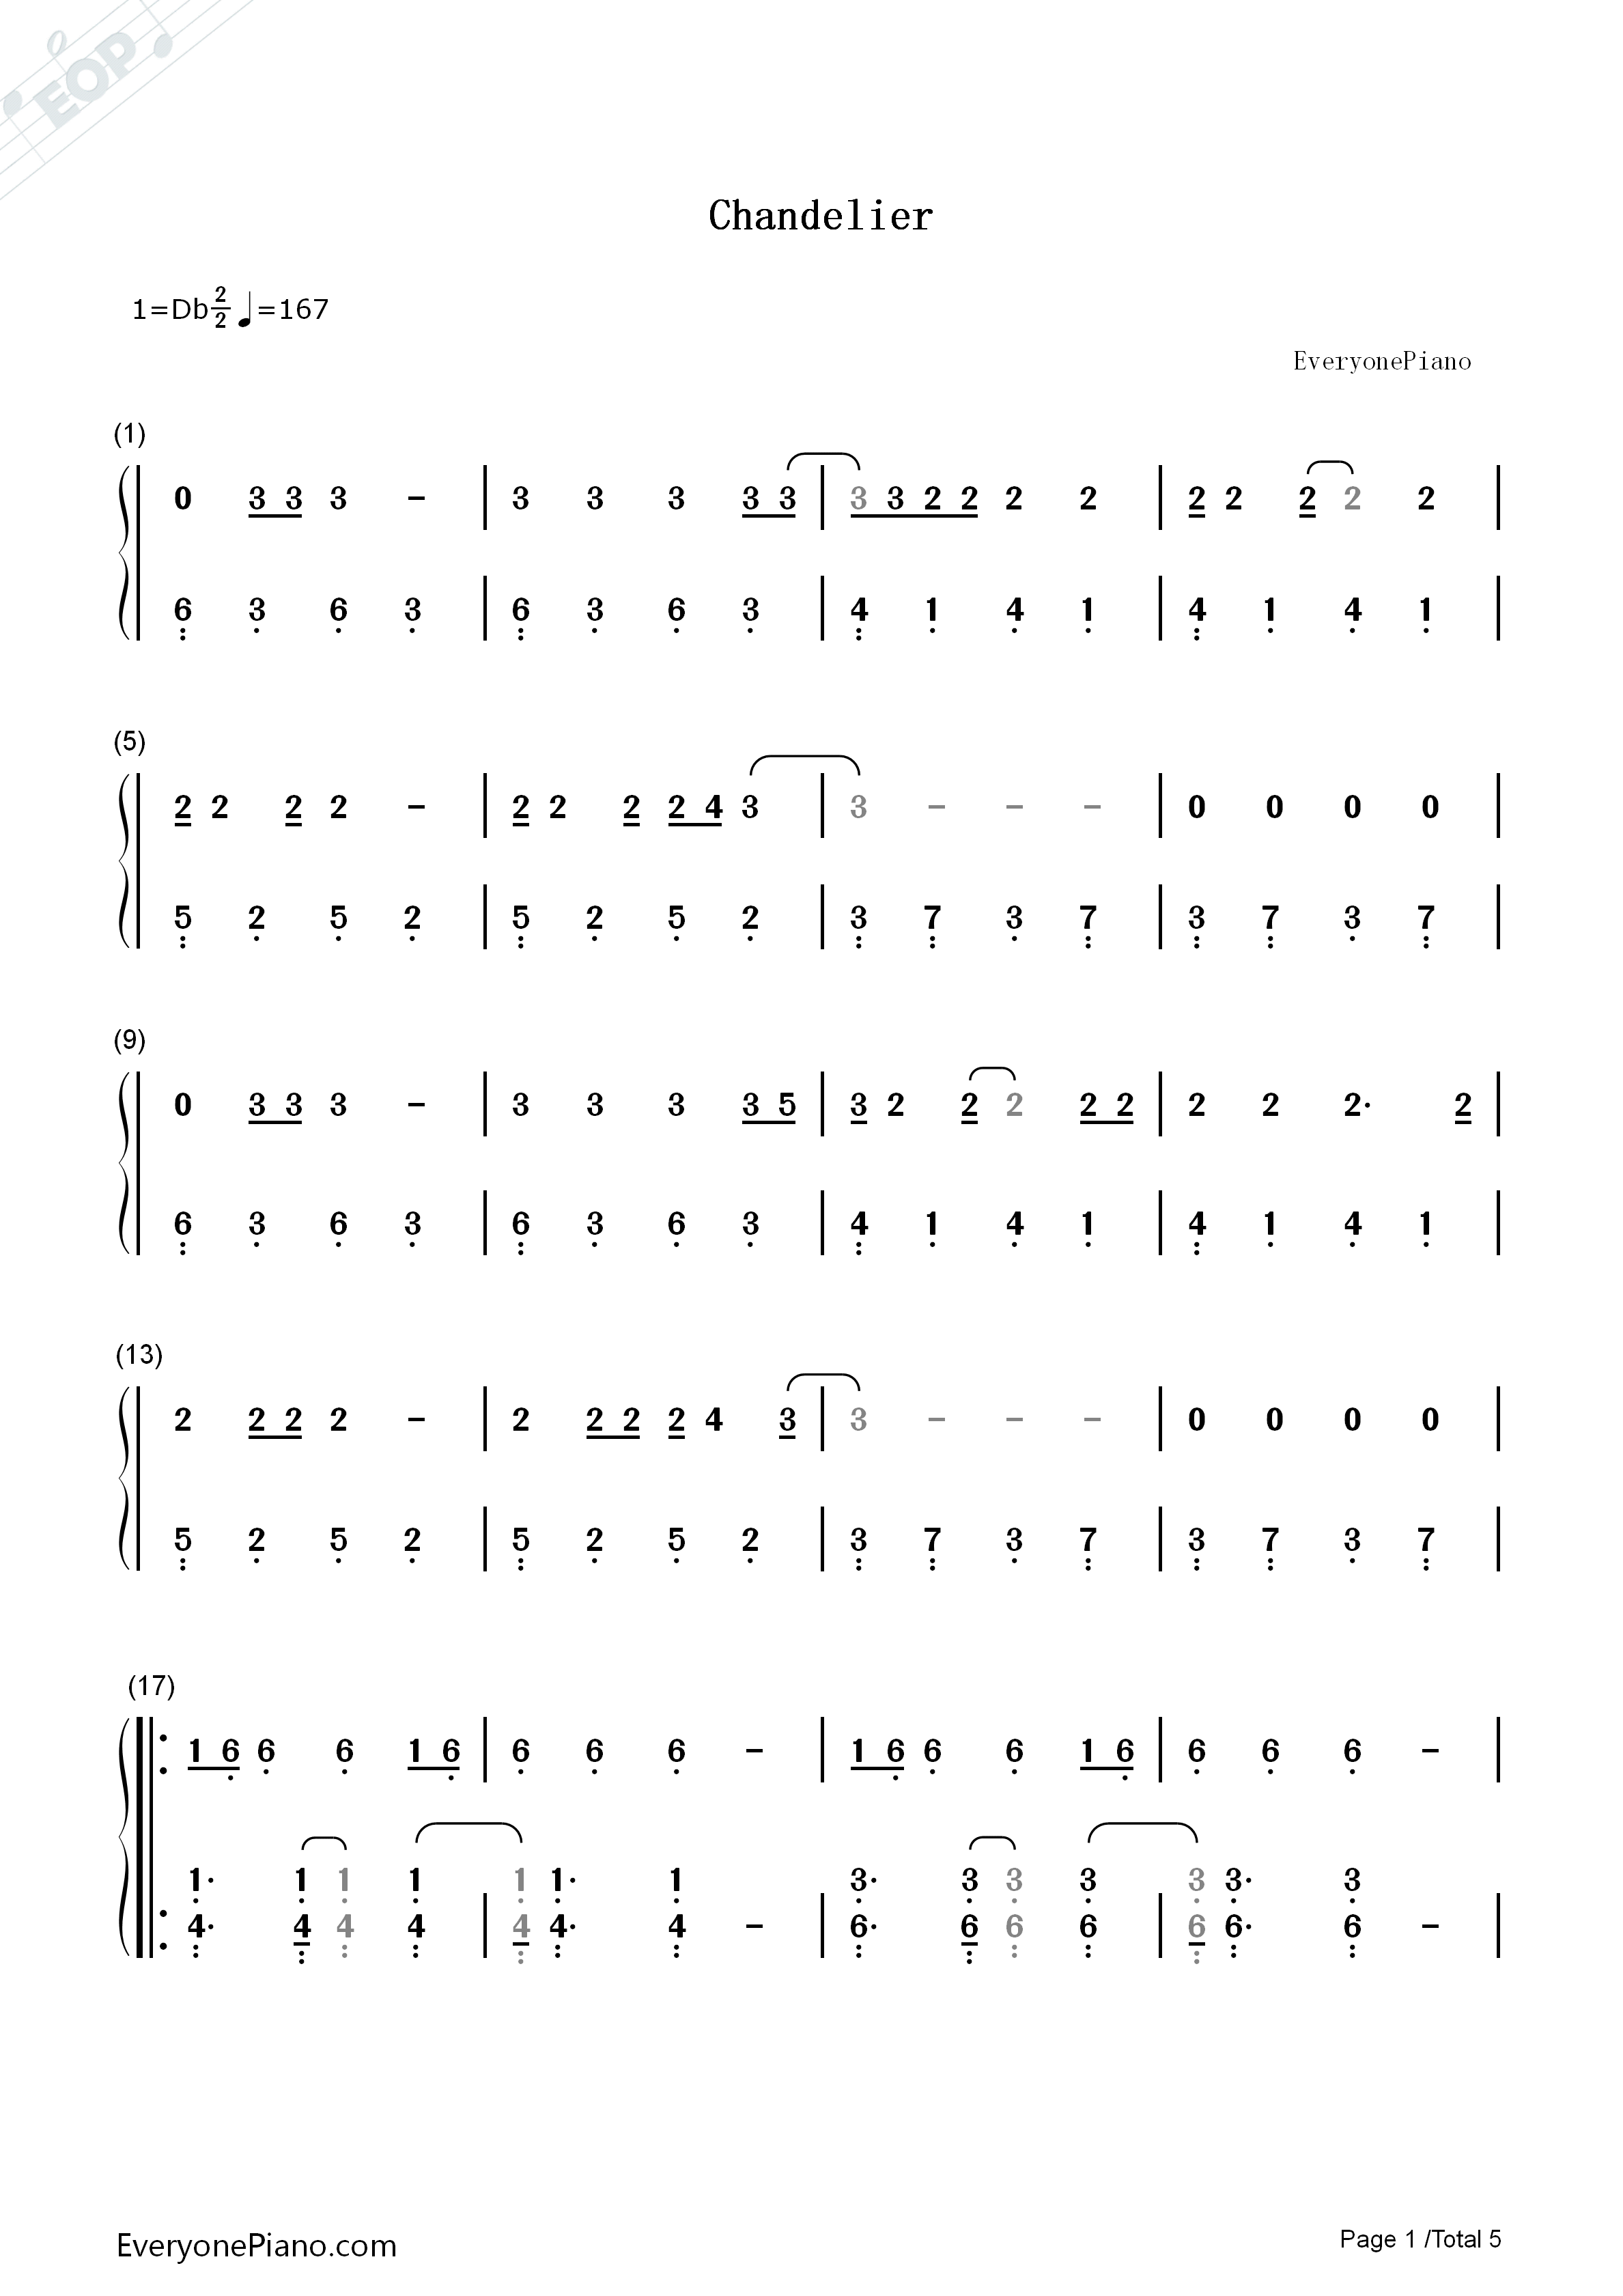 Chandelier-Sia Numbered Musical Notation Preview 1-Free Piano Sheet Music u0026 Piano Chords